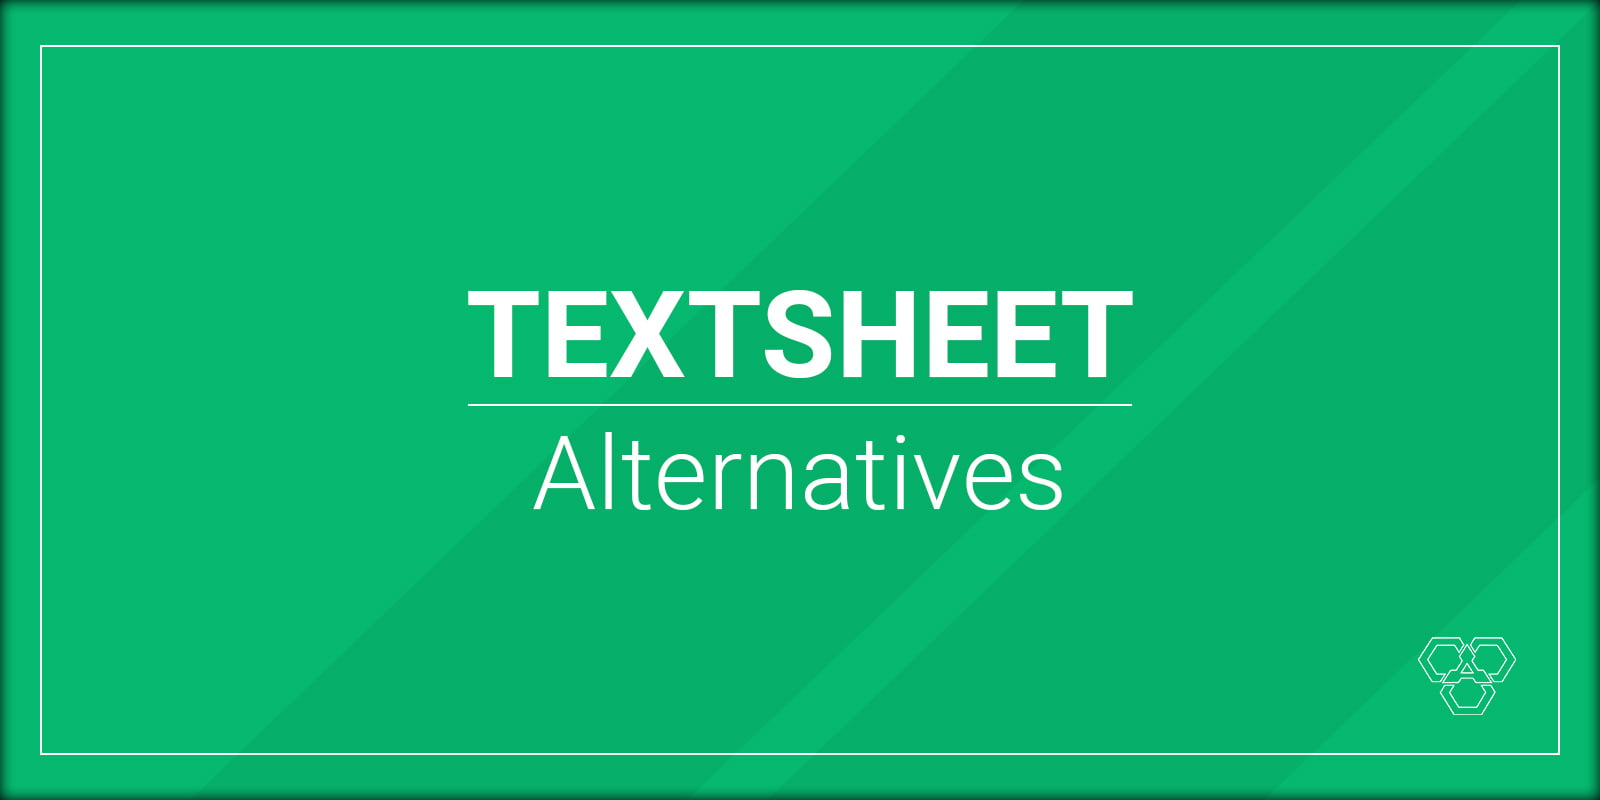 Alternatives to Textsheet for 2021